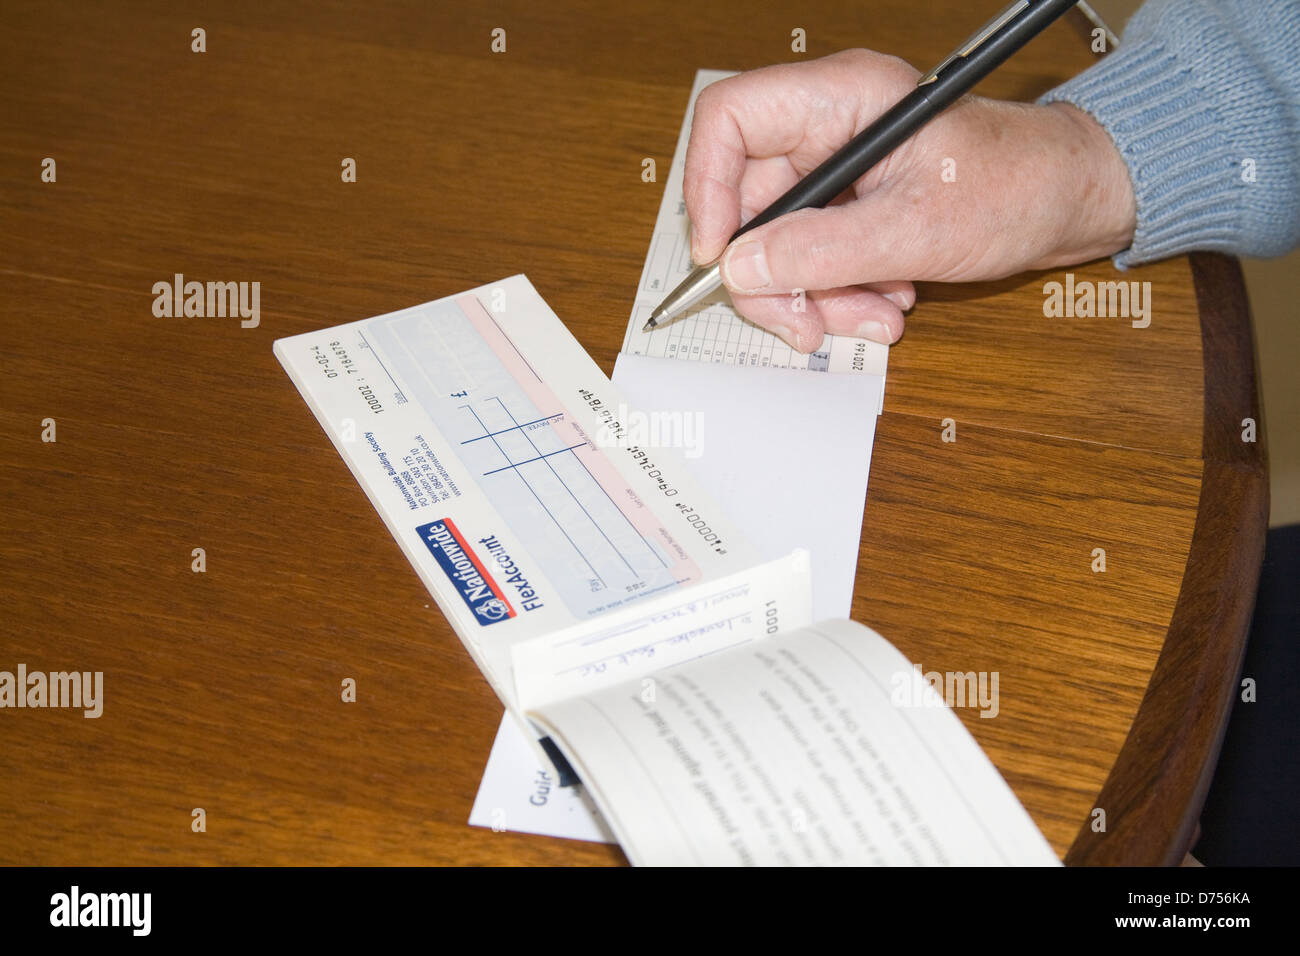 Do building society cheques need time to clear?